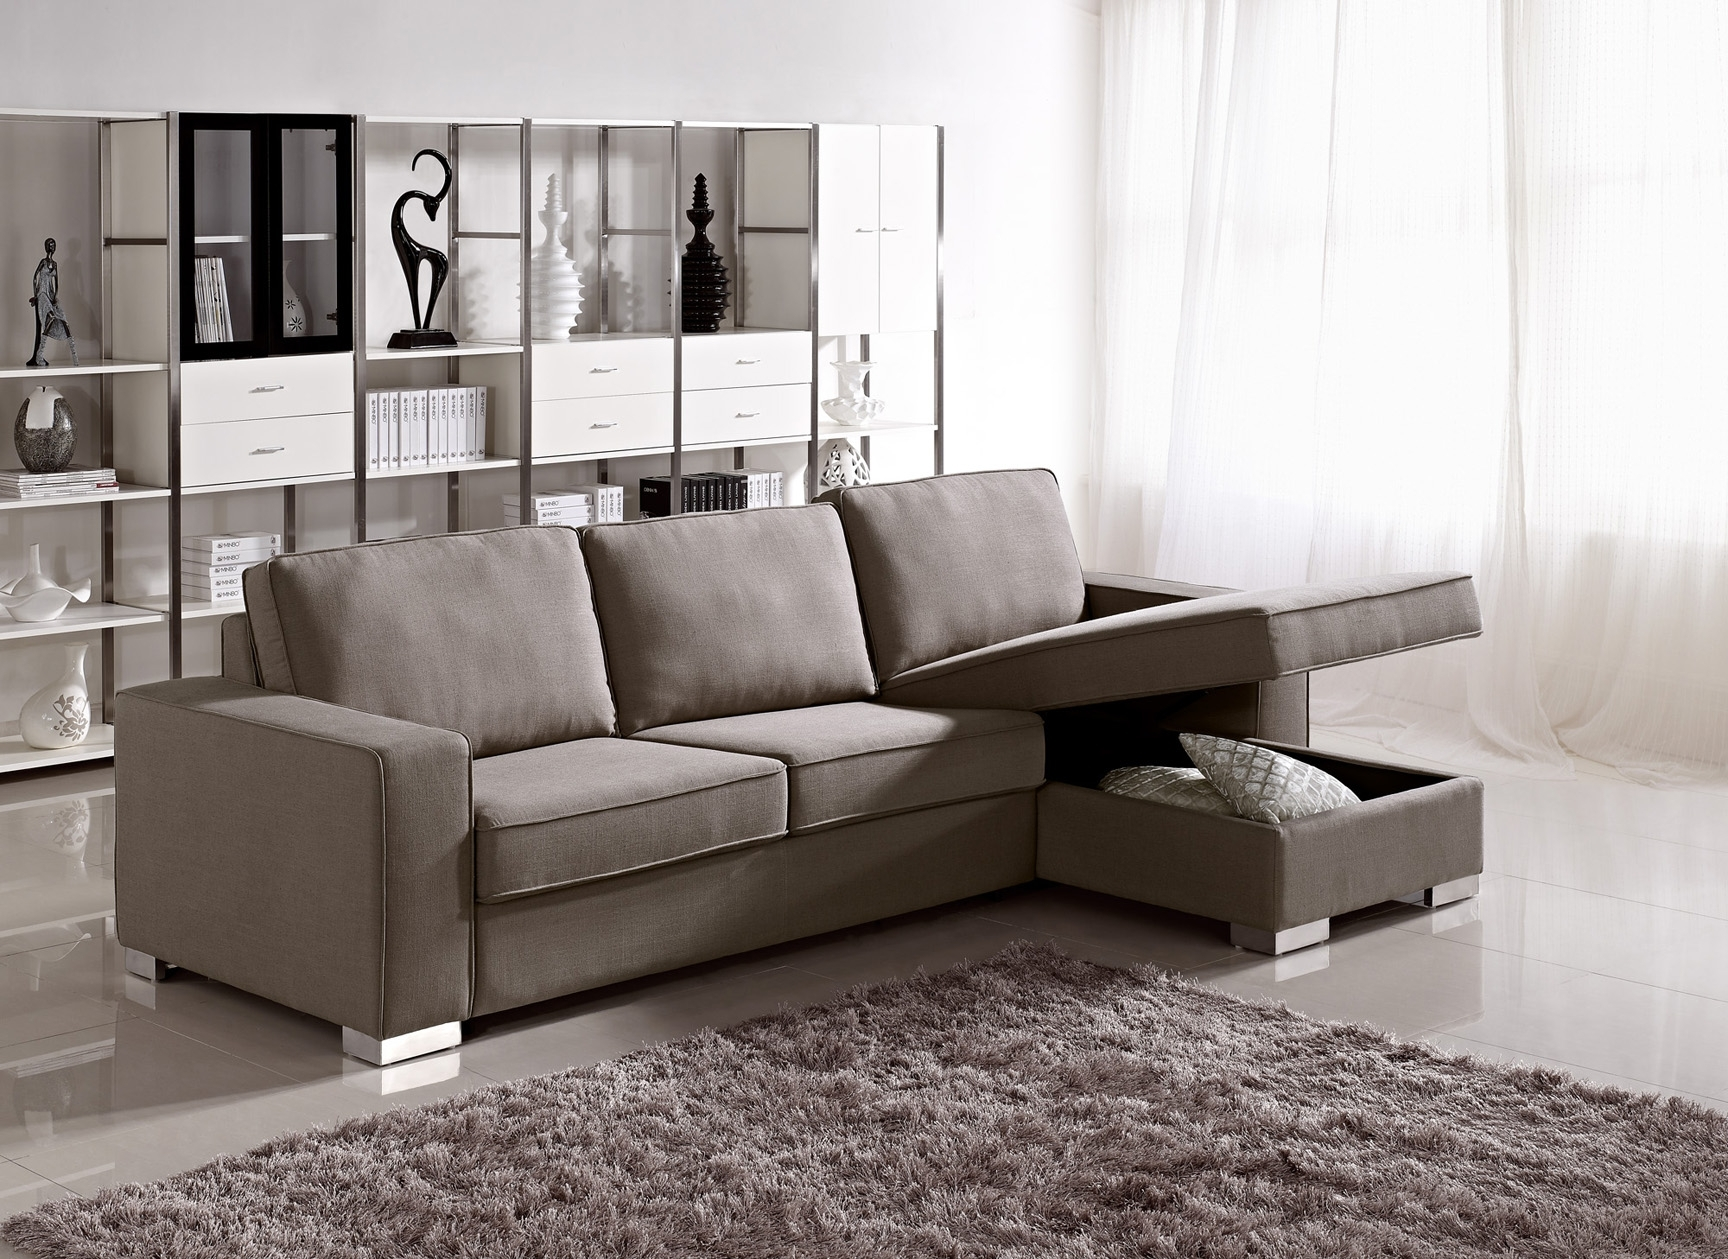 Living Room Furniture Storage Modular Sofa With Thesofa Modern Nice Intended For Nyc Sectional Sofas (Image 4 of 10)